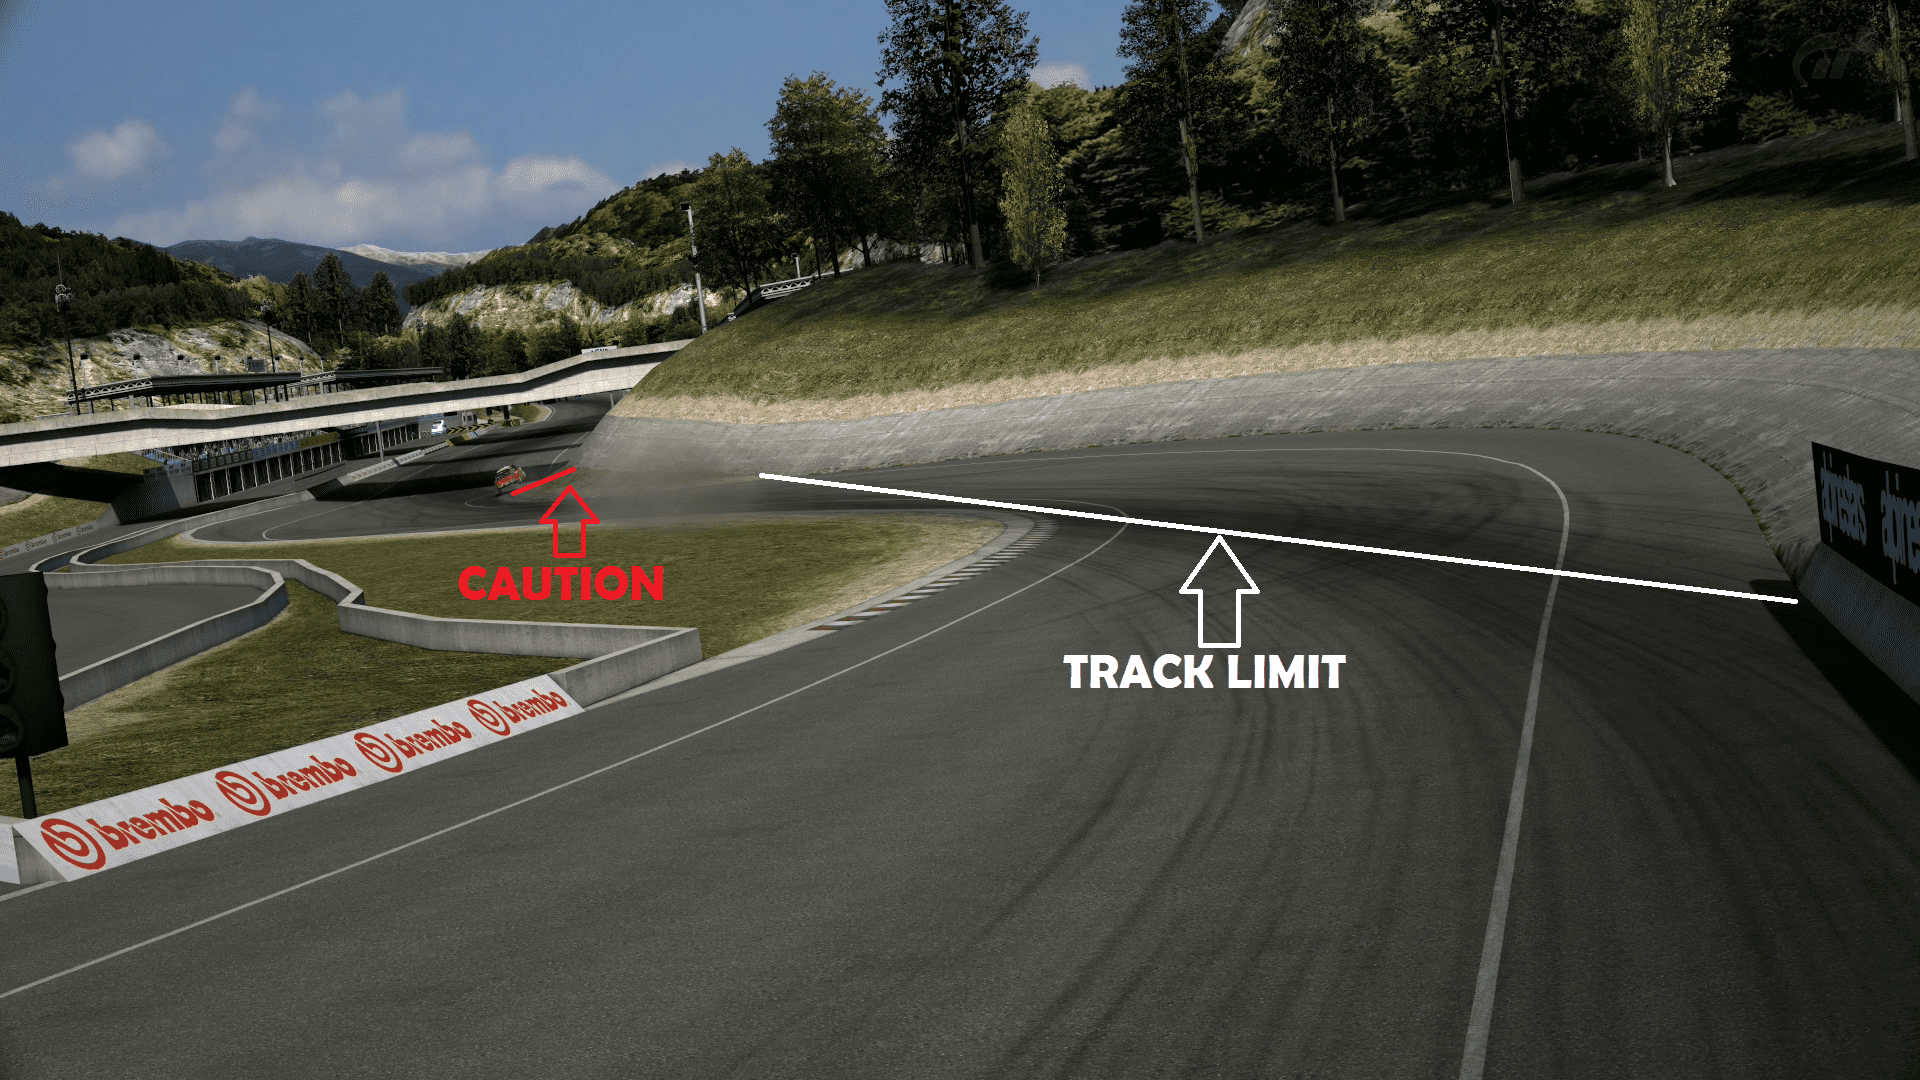 TARIL MOUNT TRACK LIMIT AND CAUTION 1.png